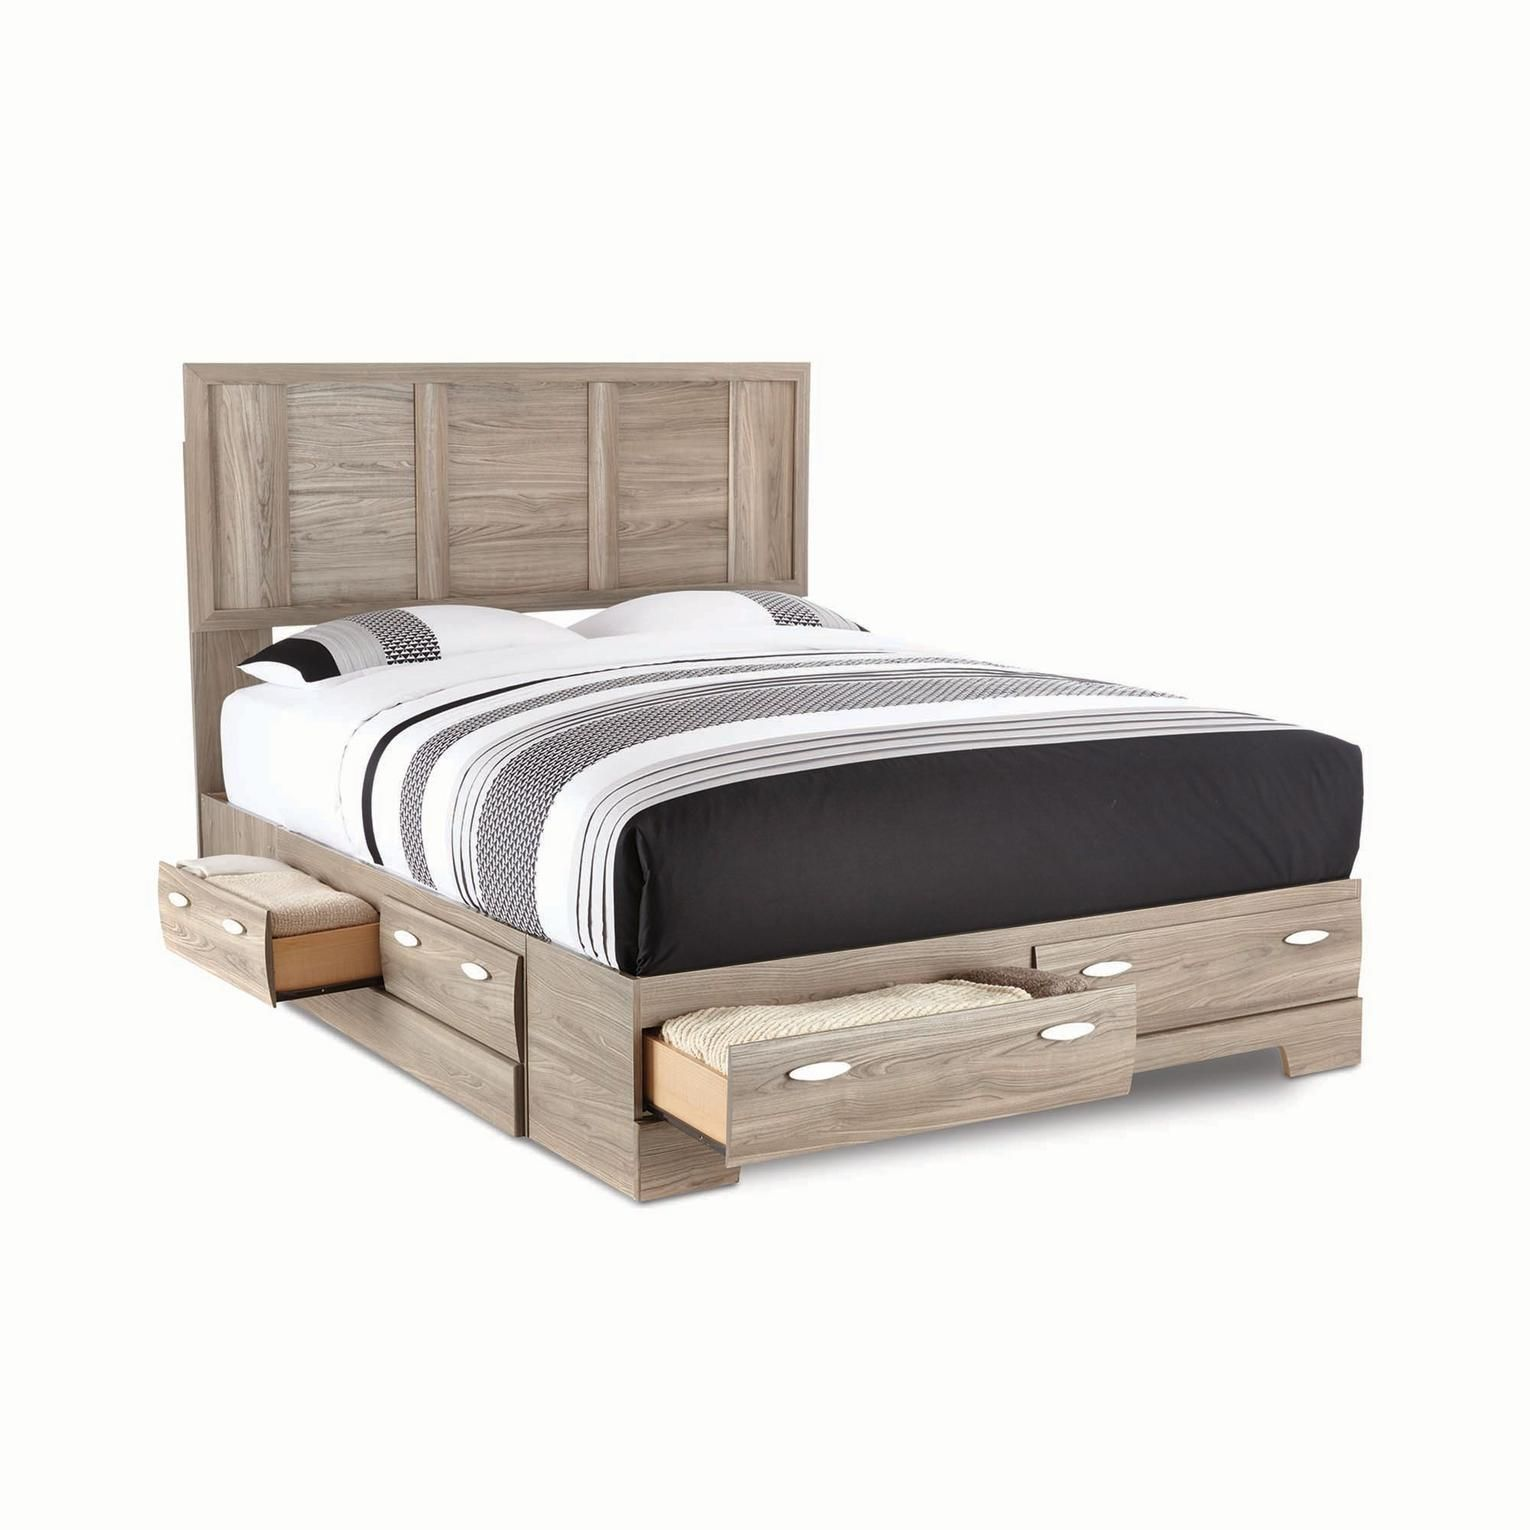 Buy Clarissa Panel Storage Bed Ensemble Online & Reviews